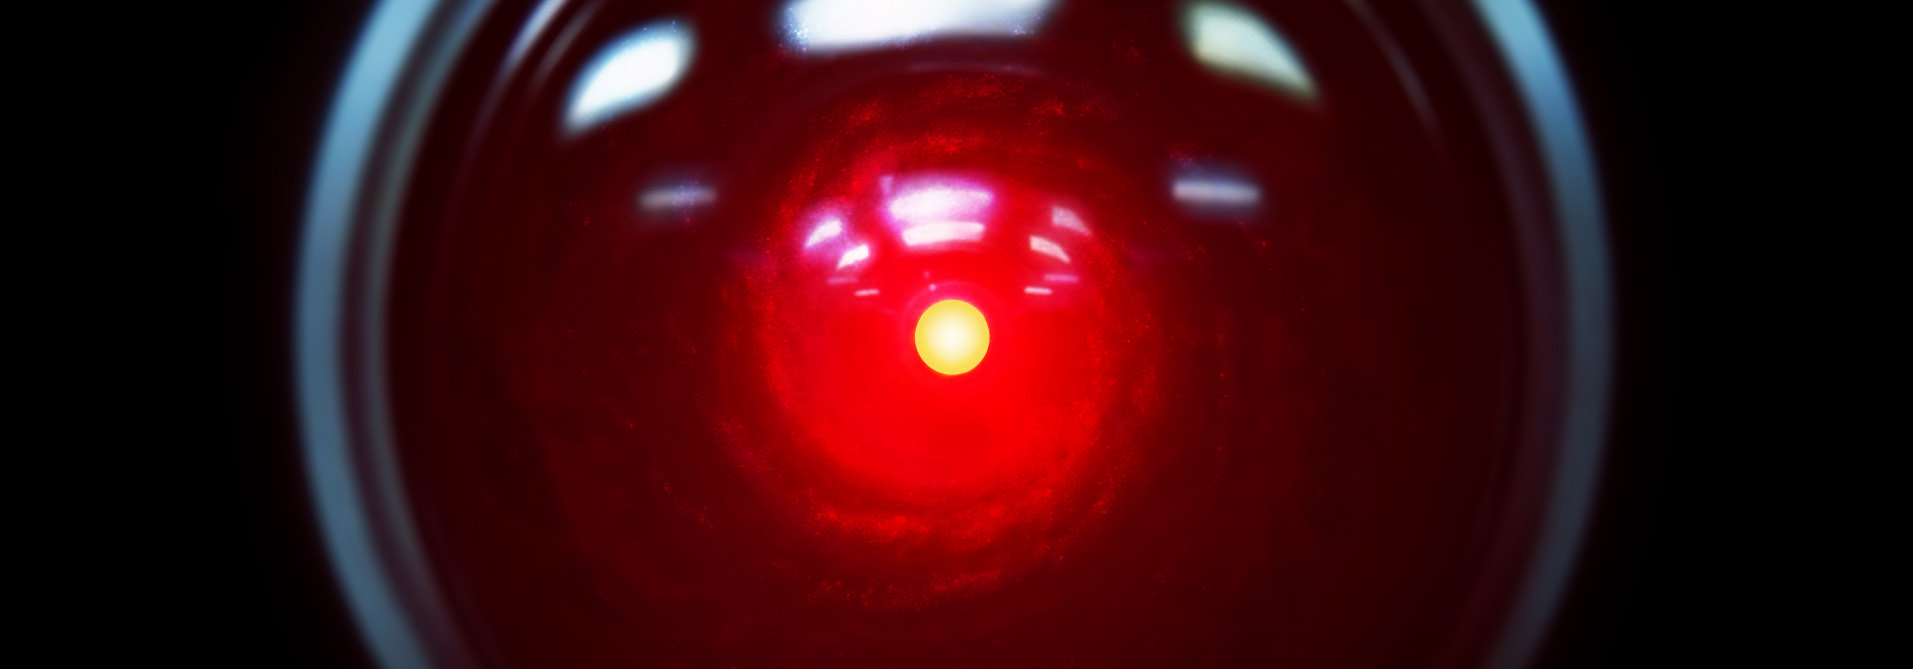 D. Voice control and feedback Voice based interfaces have occupied imagination ever since the pop culture exposure to the eponymous HAL 9000 and more recently in the movie Her.